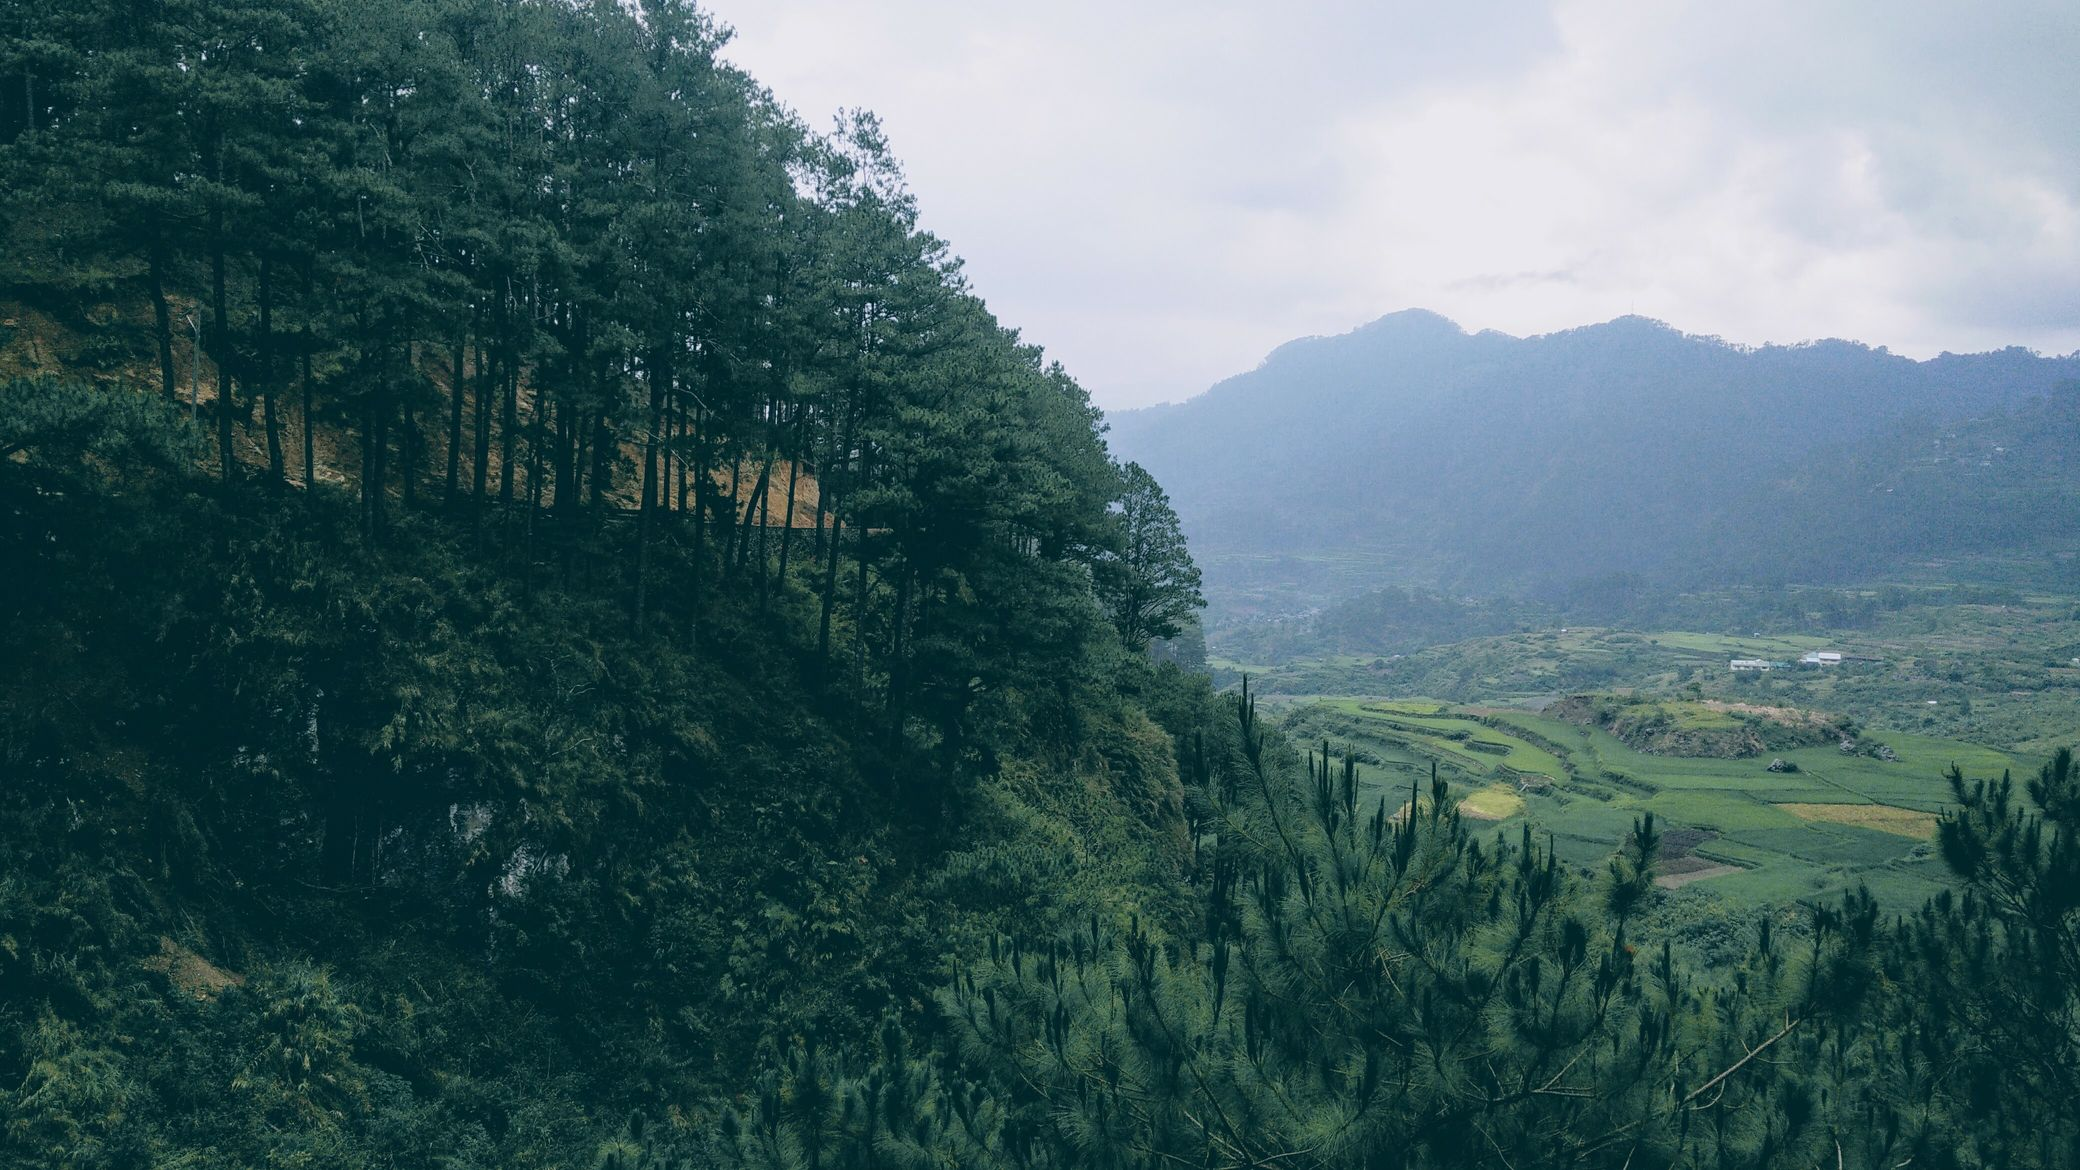 Pine trees on a hill, beyond which lies a town within a valley in Sagada, one of the most amazing places to visit in the Philippines